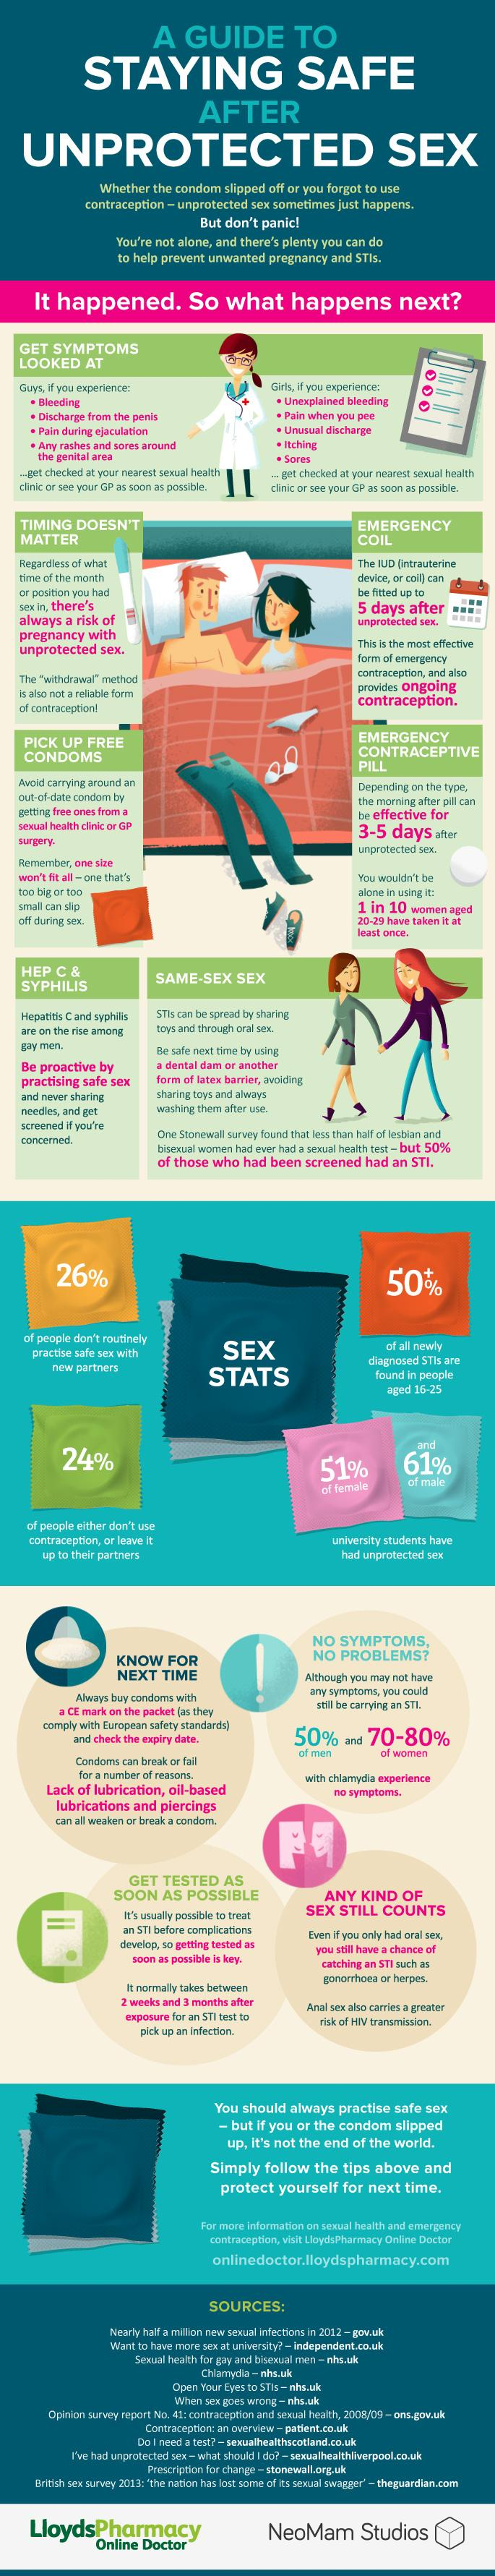 A-Guide-to-Staying-Safe-After-Sex